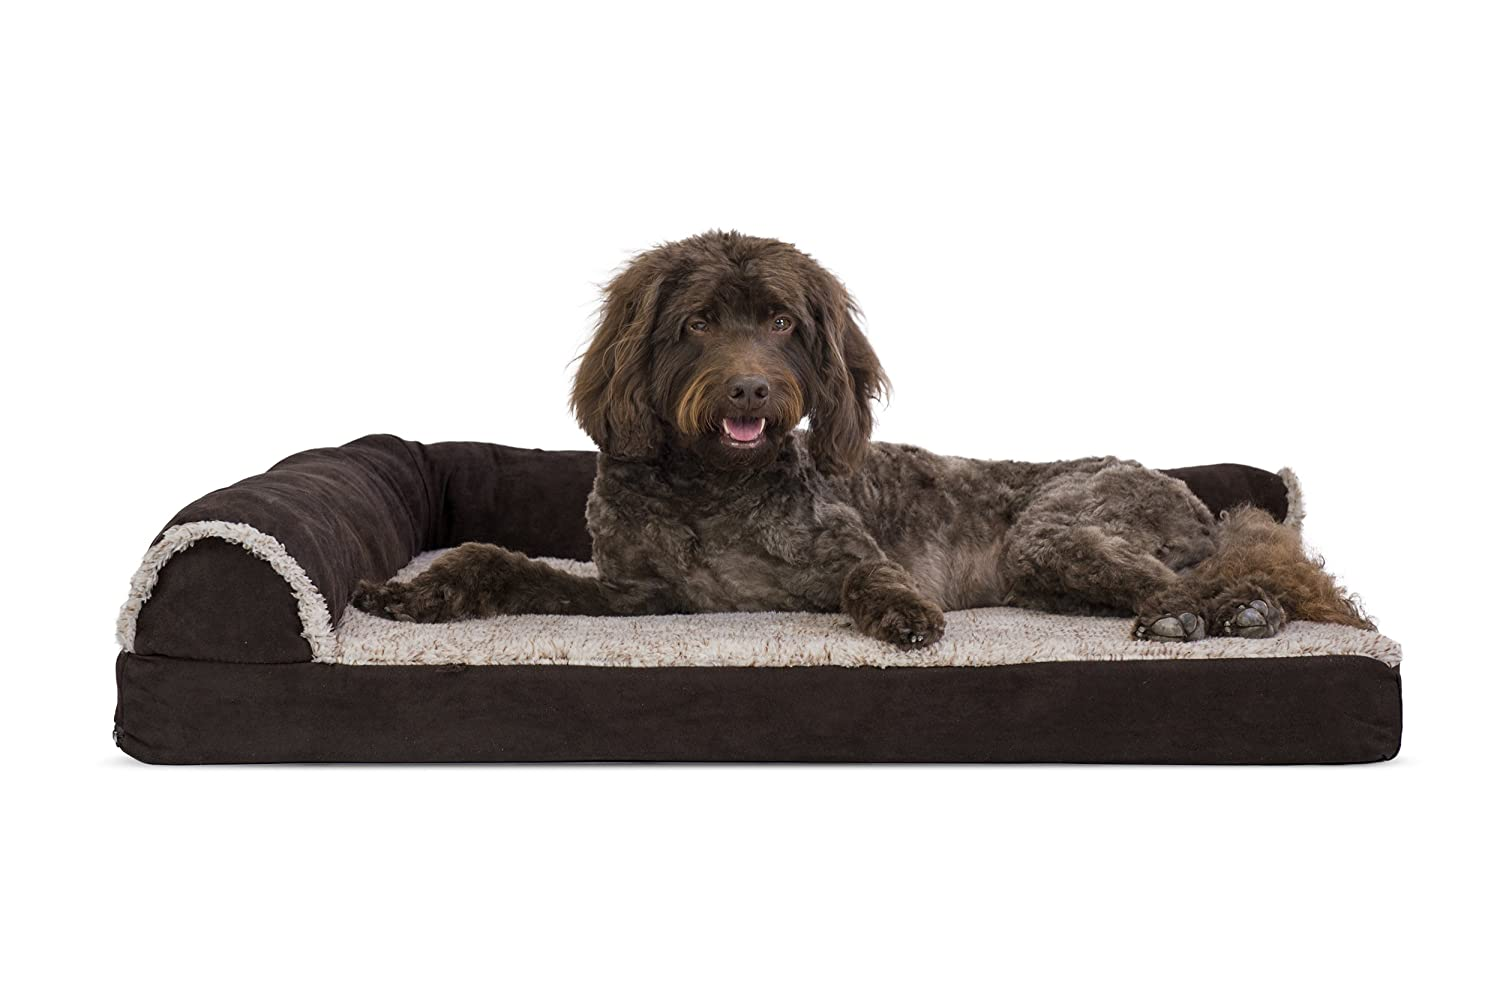 Two Sided-Espresso Large Two Sided-Espresso Large Furhaven Pet 84441081 Espresso Deluxe Chaise Lounge Cooling Gel Top Sofa Pet Bed, Large